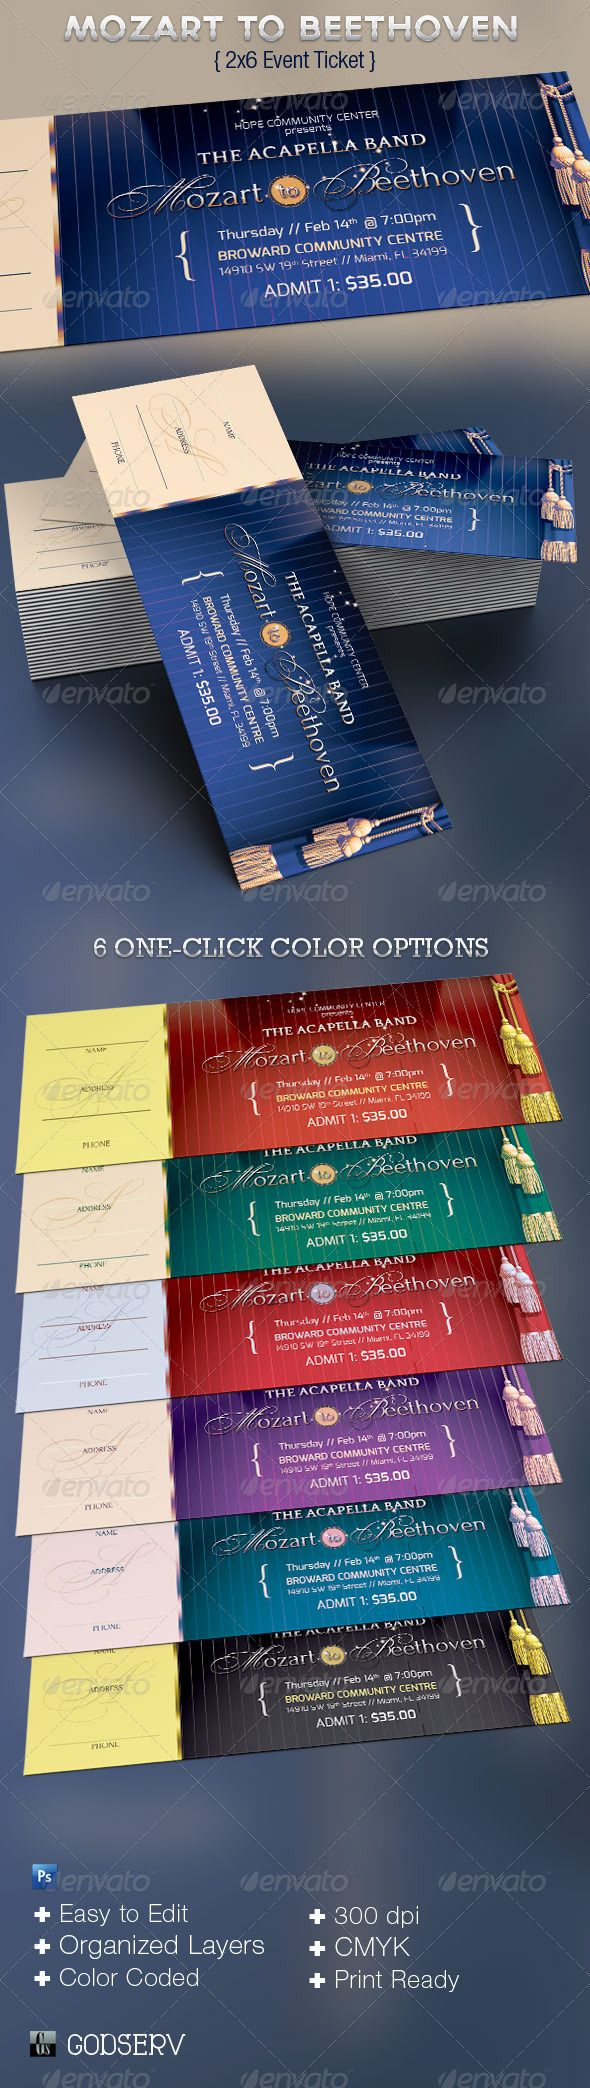 best images about ticket designs basketball baby mozart beethoven event ticket template